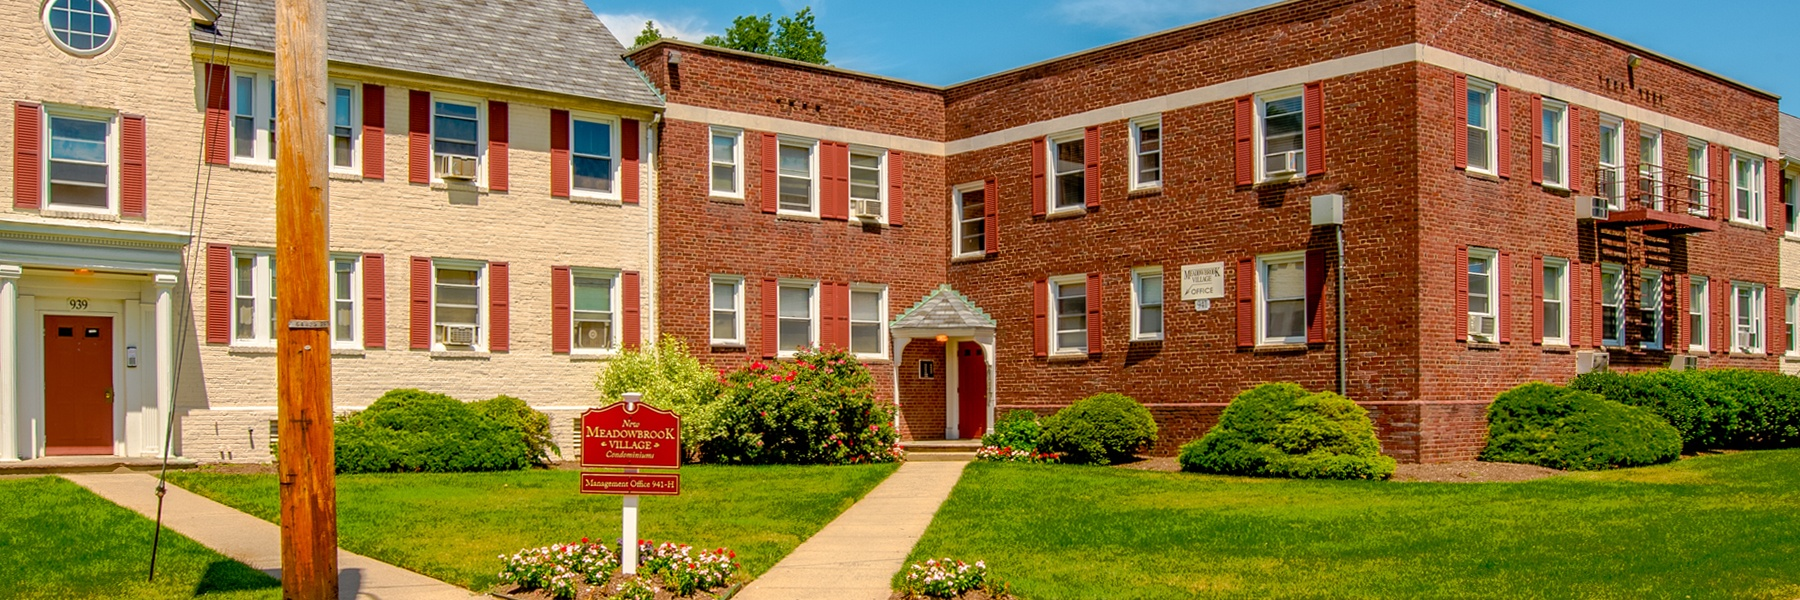 New Meadowbrook Village Apartments For Rent in Plainfield, NJ Building View